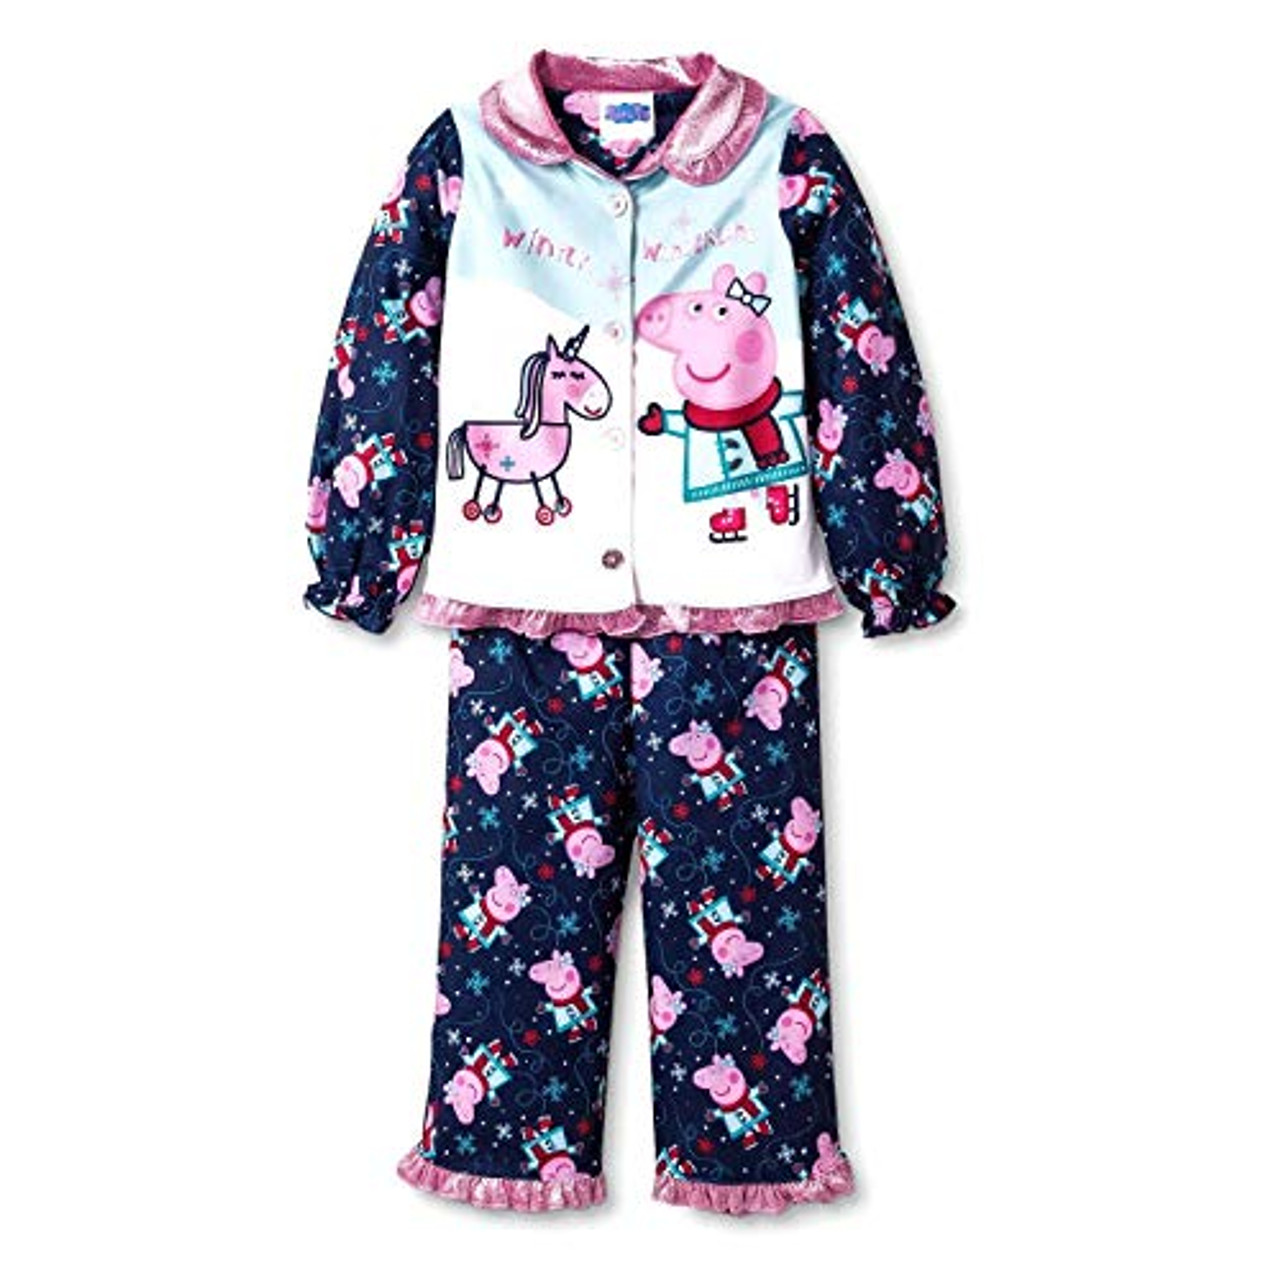 Peppa Pig Pink Holiday Christmas Flannel Granny Nightgown Gown